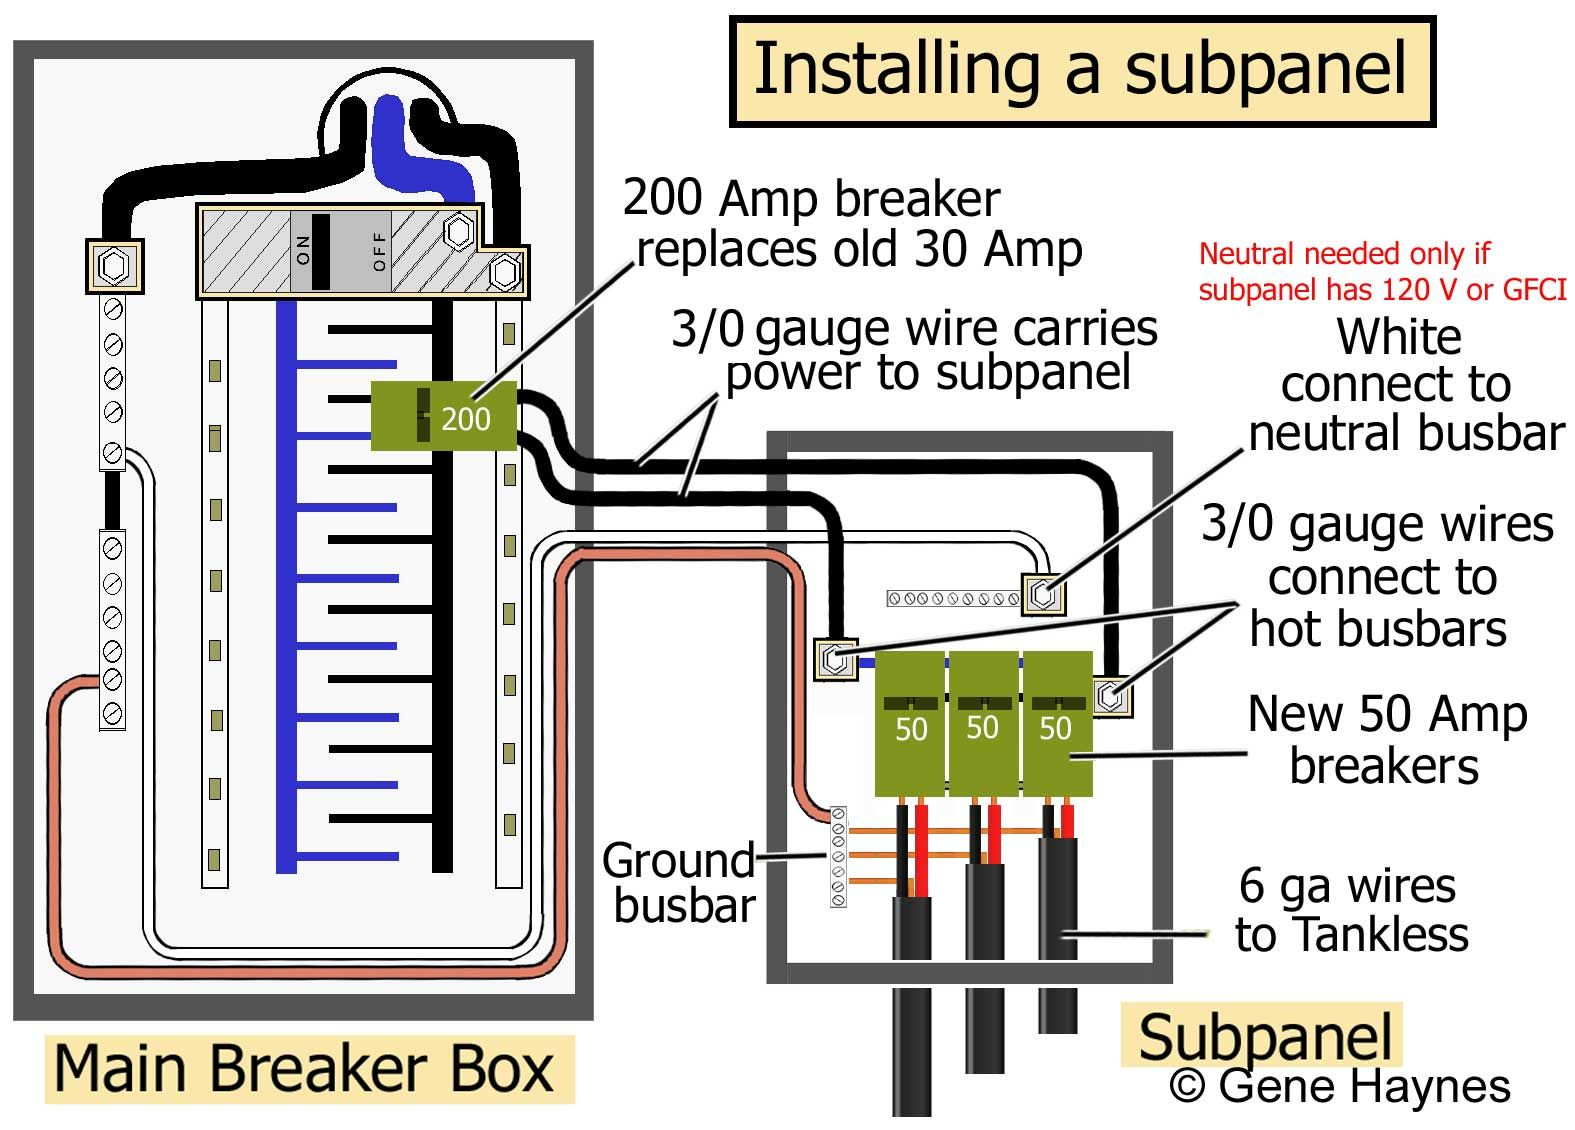 how to install a subpanel how to install main lug wiring diagram pool sub panel wiring diagram sub panel wiring code [ 1575 x 1130 Pixel ]